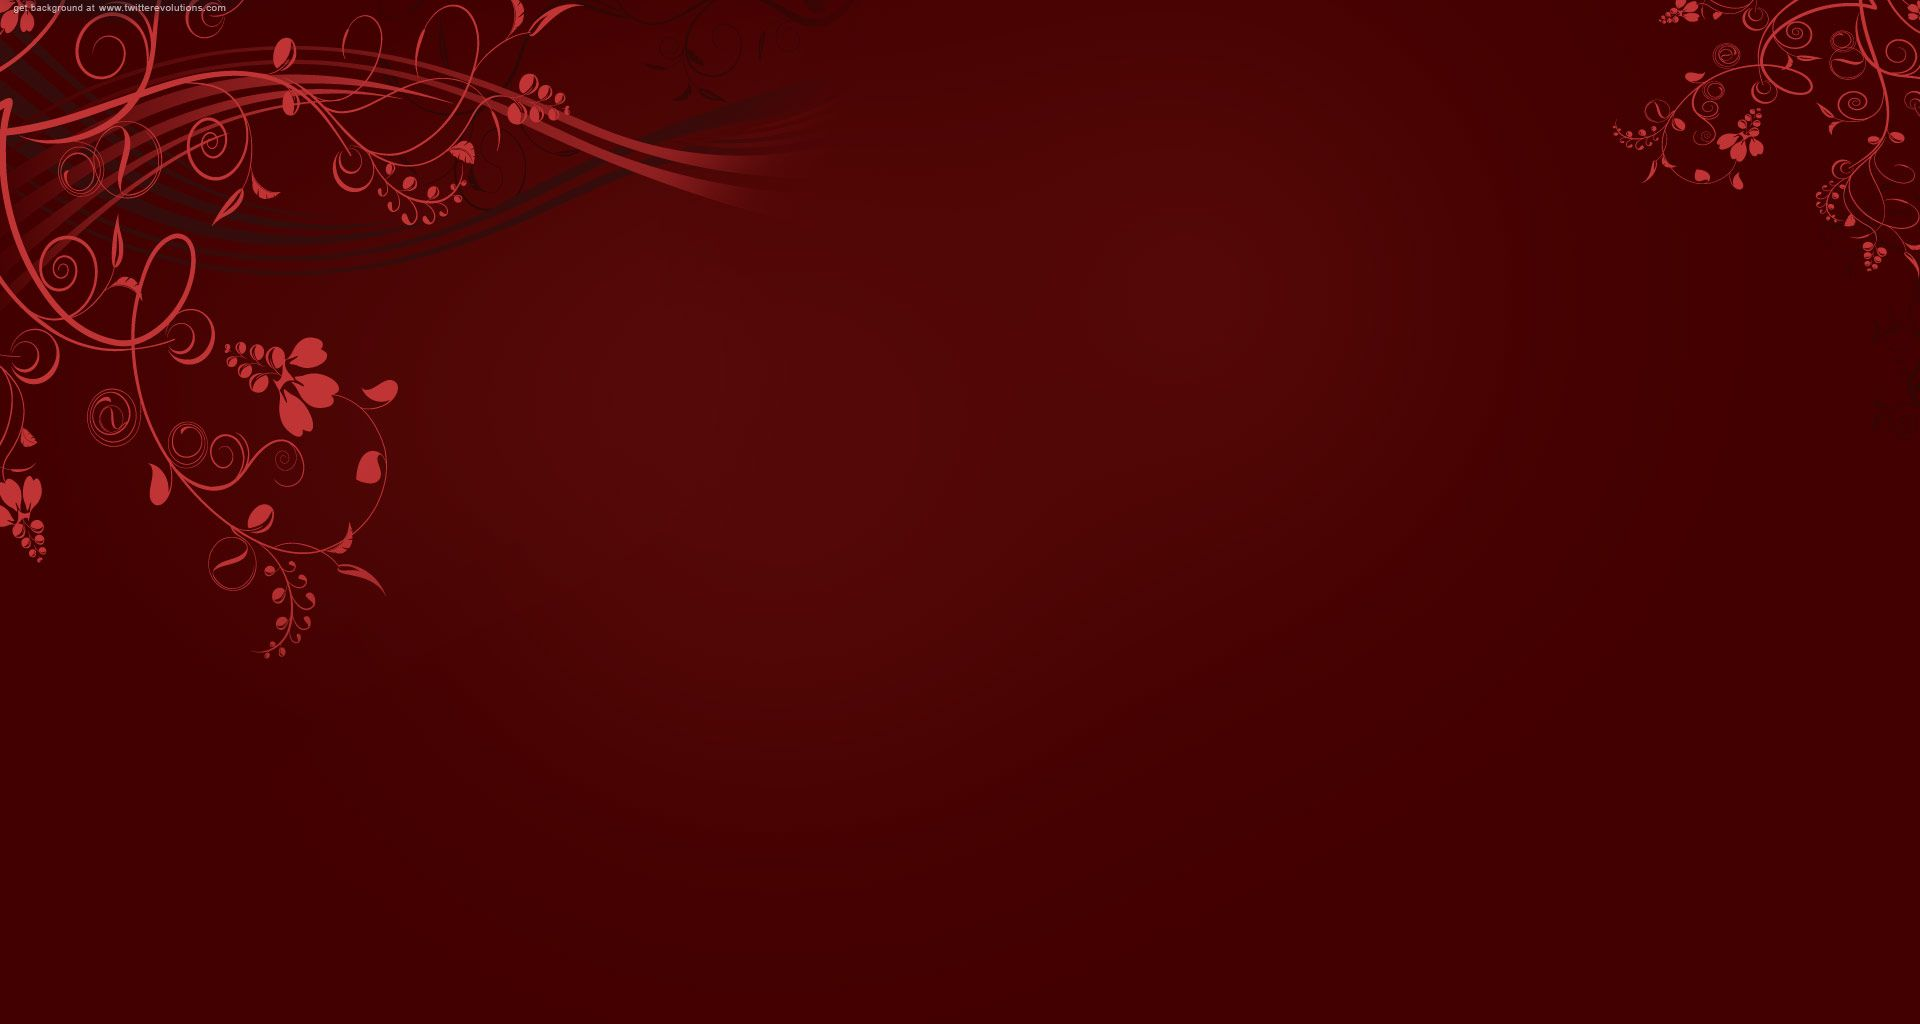 Swirls Verwijderen Web Design Backgrounds Red Swirls Twitter Background Twitter